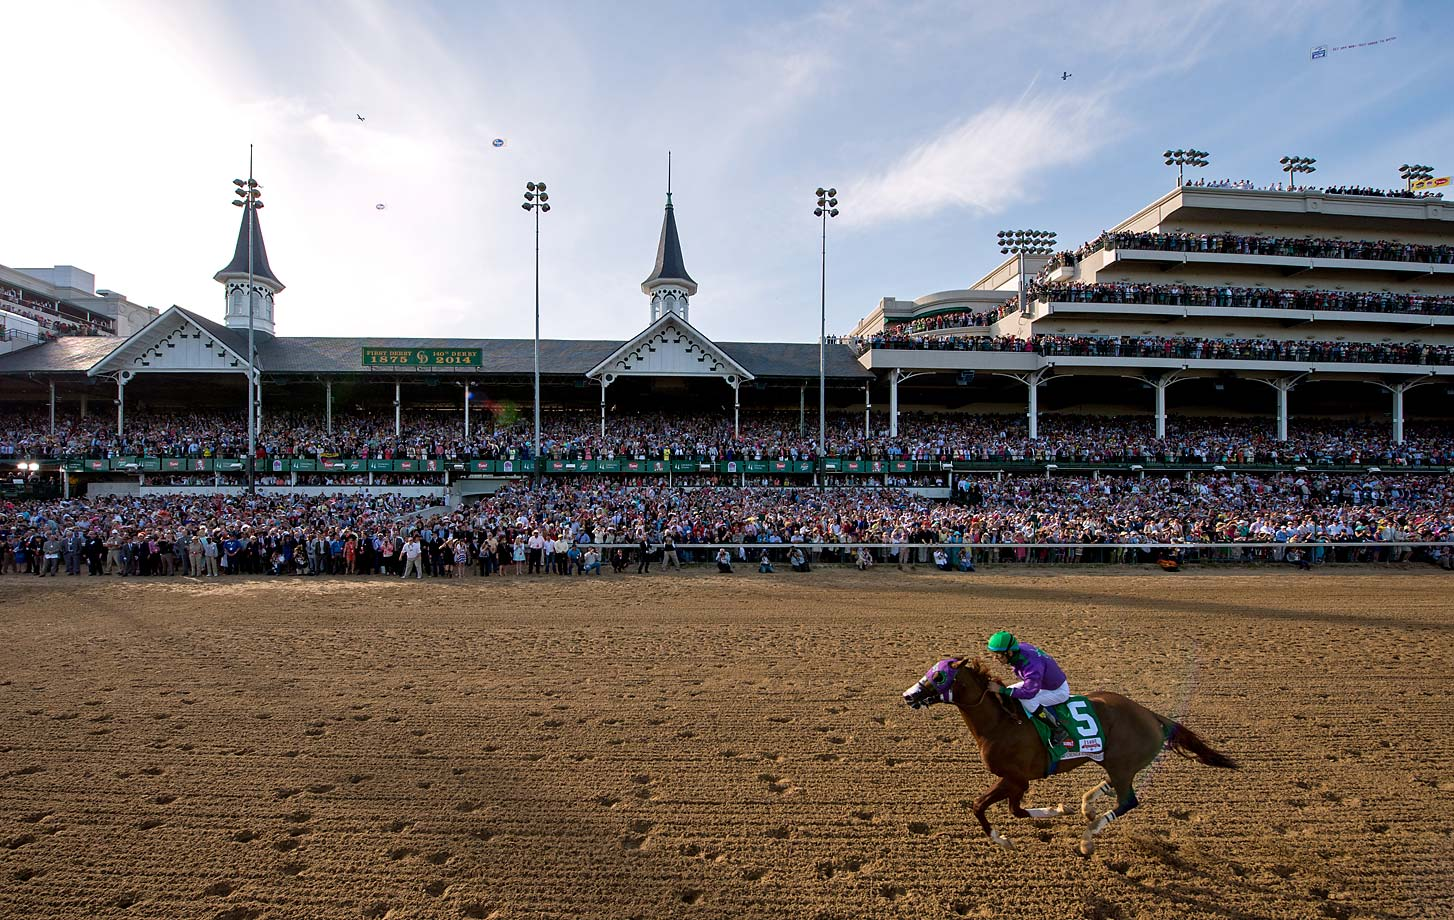 California Chrome, egged on by jockey Victor Espinoza, races past the grandstand and towards the finish line to win the 140th running of the Kentucky Derby.